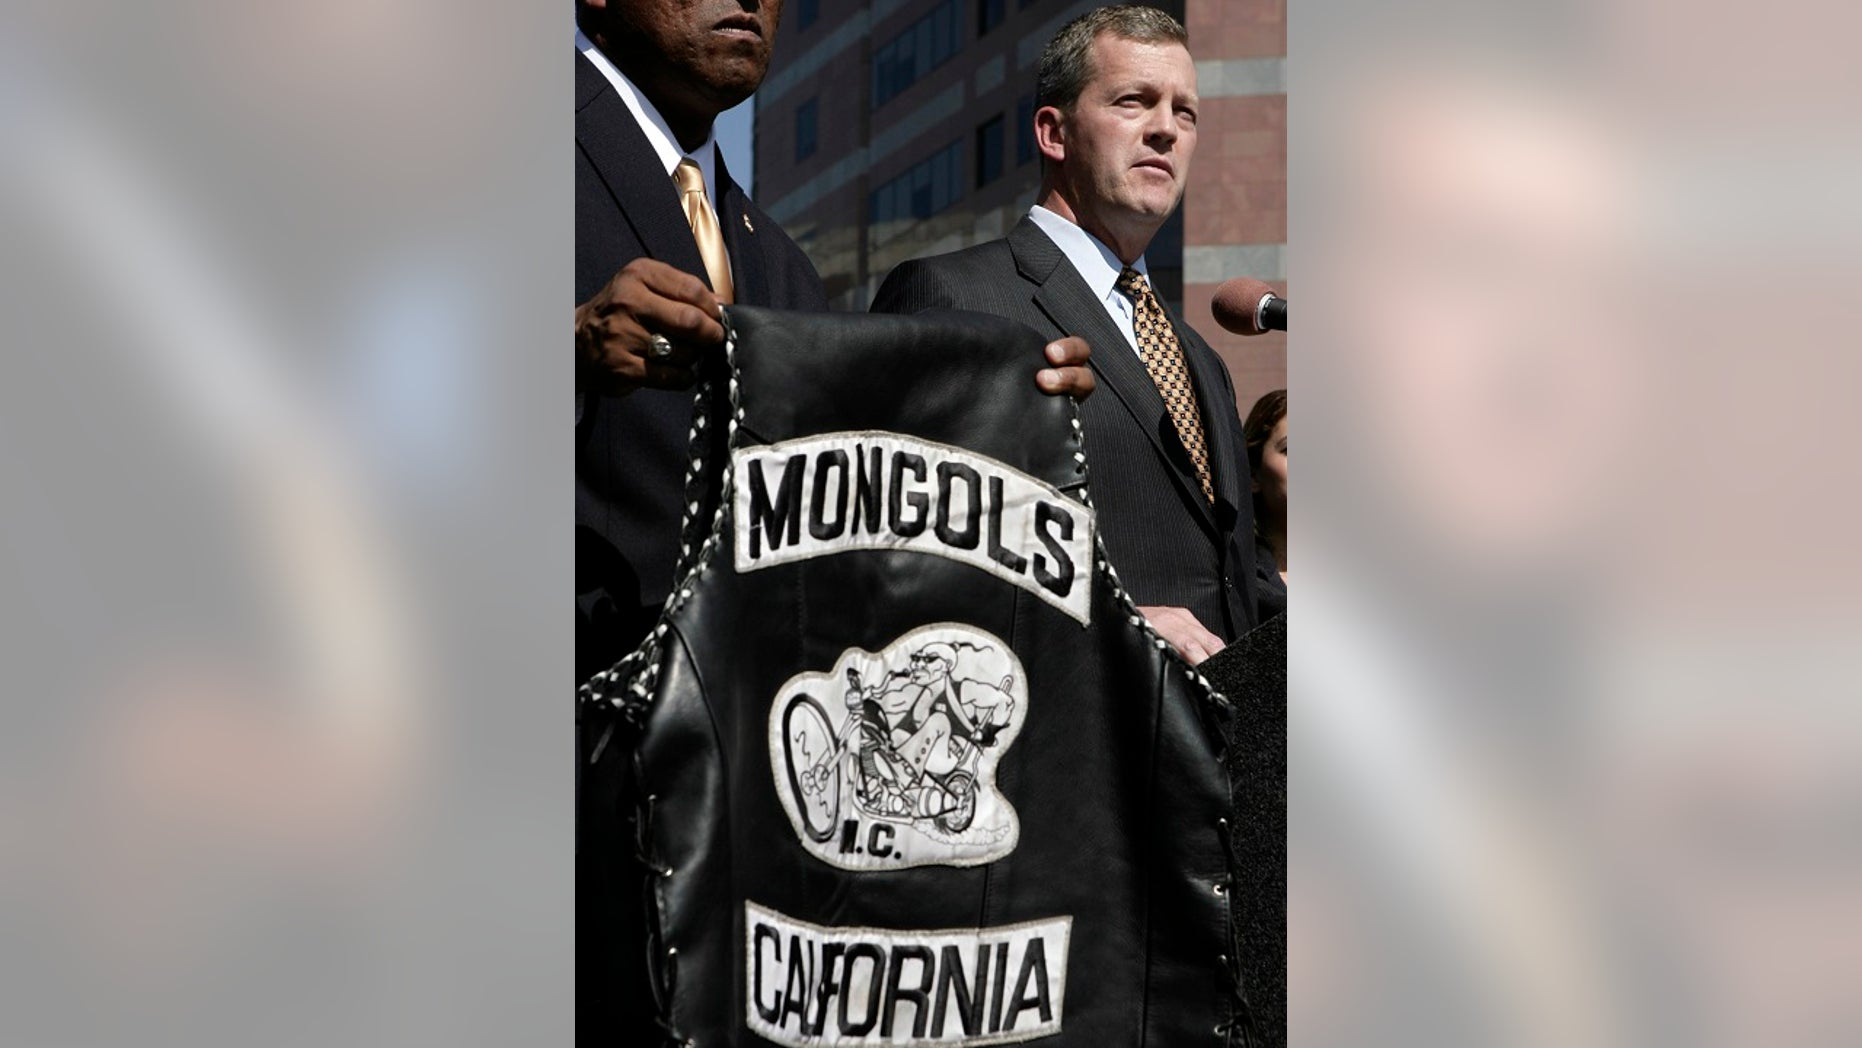 U.S. Attorney Thomas P. O'Brien, right at the news conference in Los Angeles about the arrest of several Mongol motorcycle members in six states as a vest with the Mongol logo displayed. (Associated Press)